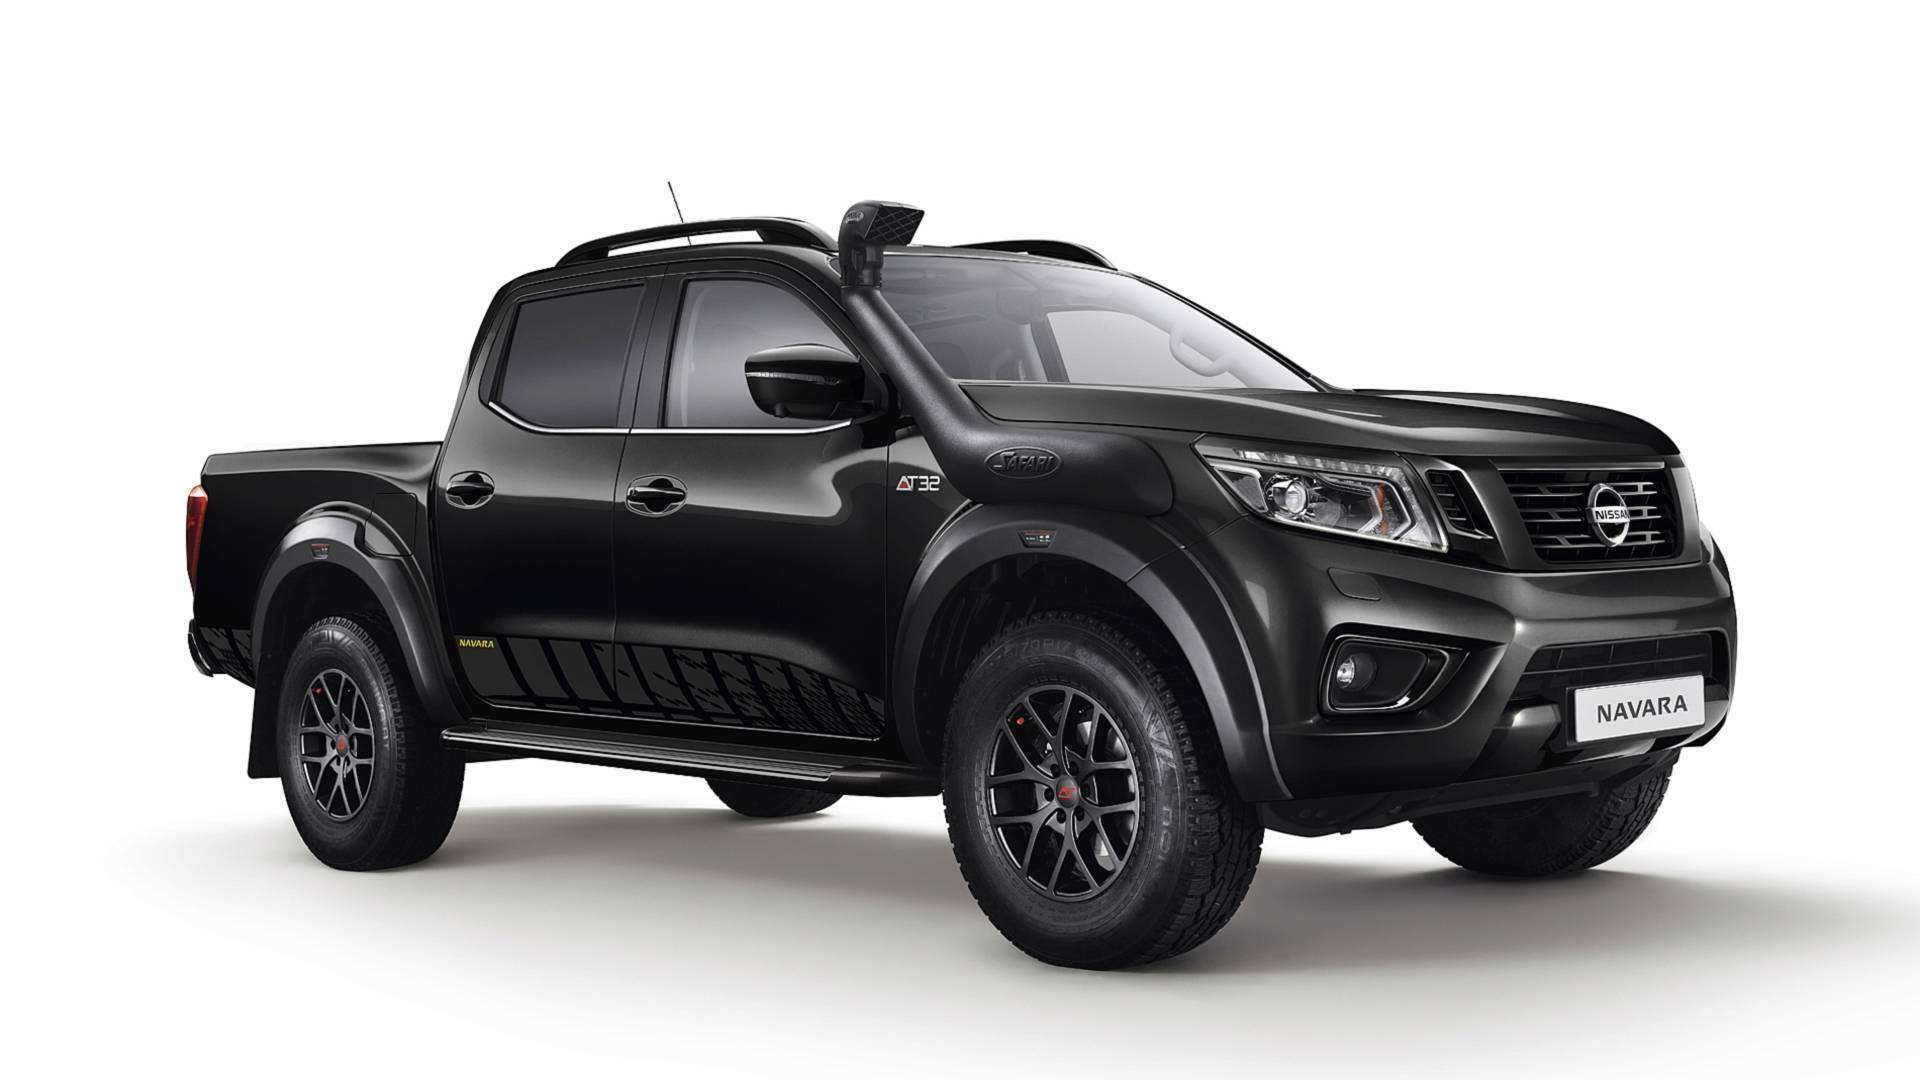 58 A 2020 Nissan Navara Pictures